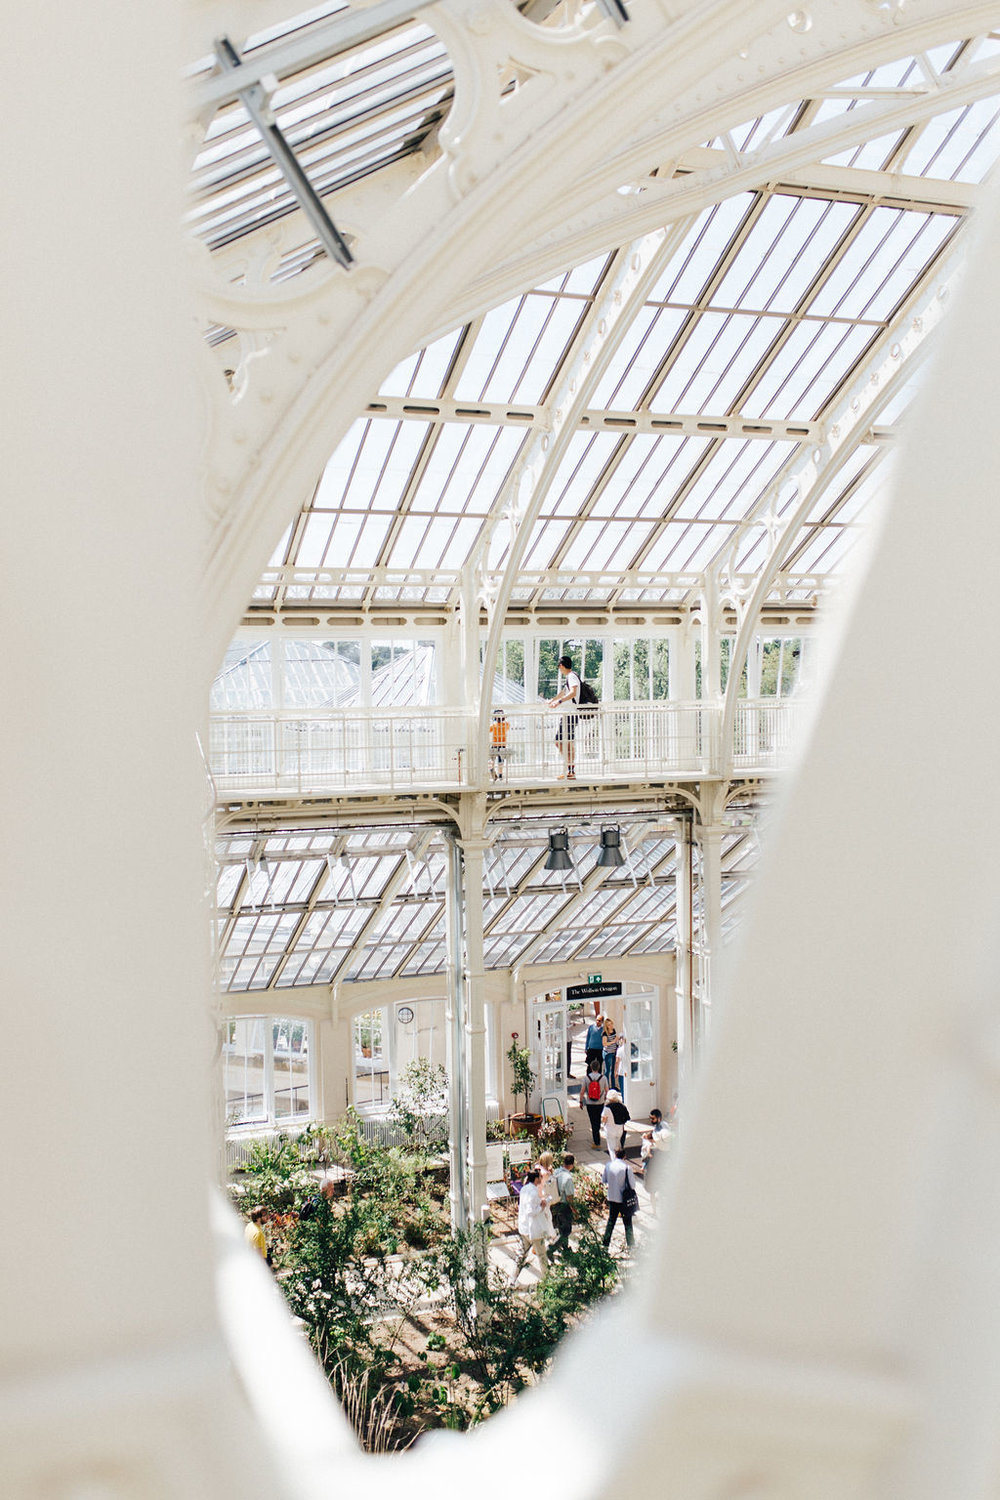 Inside the Temperate House in Kew Gardens, London